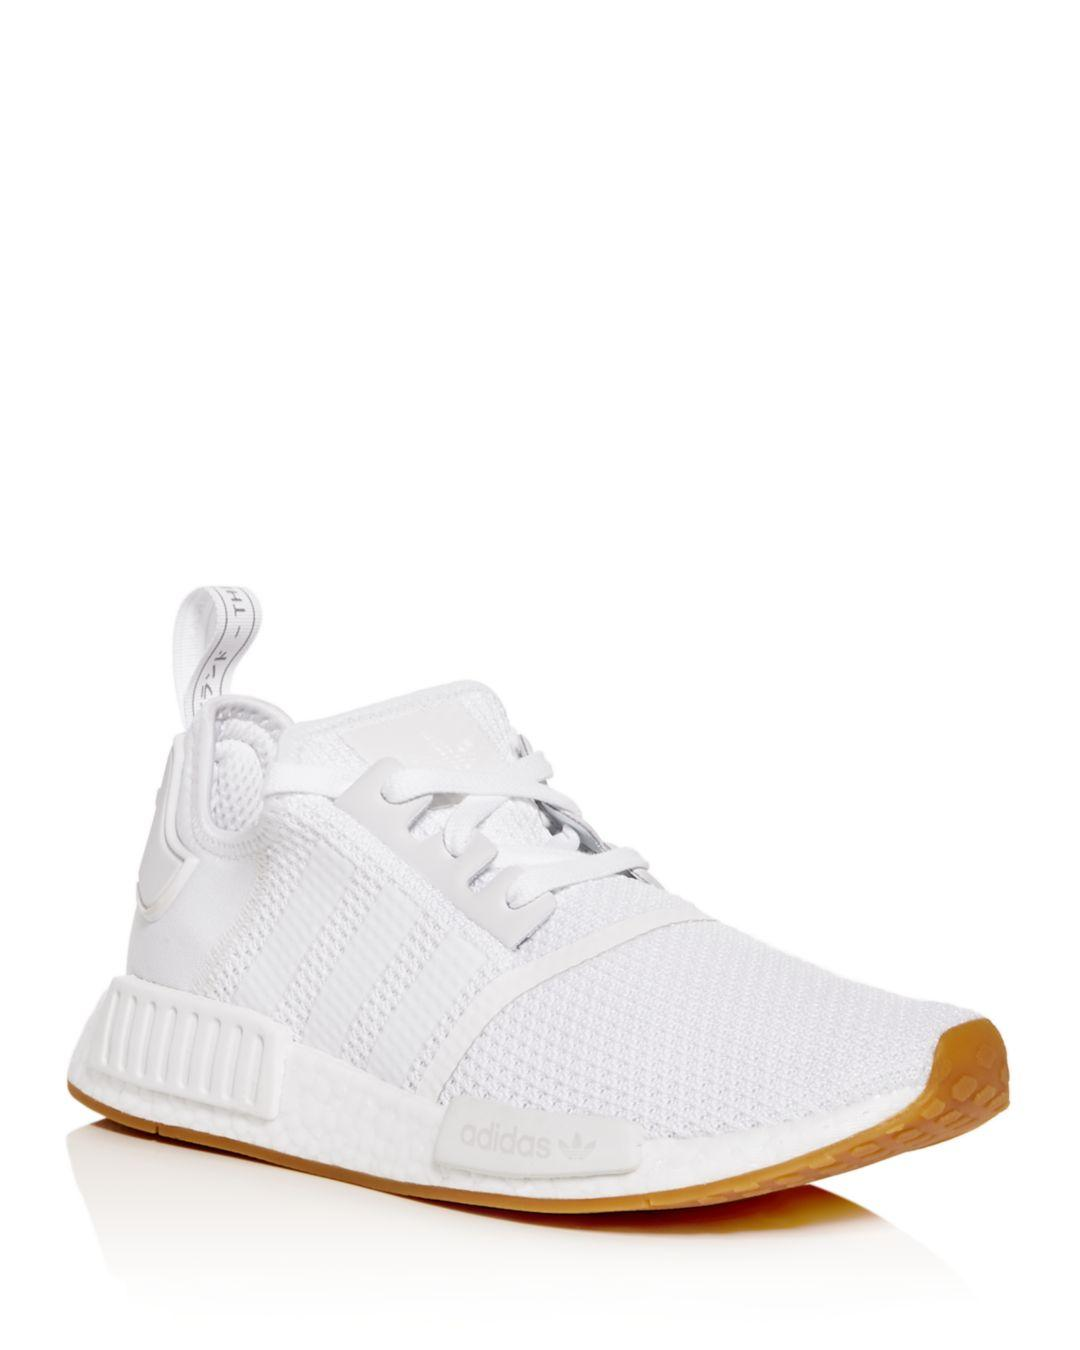 Nmd R1 Knit Low Top Sneakers